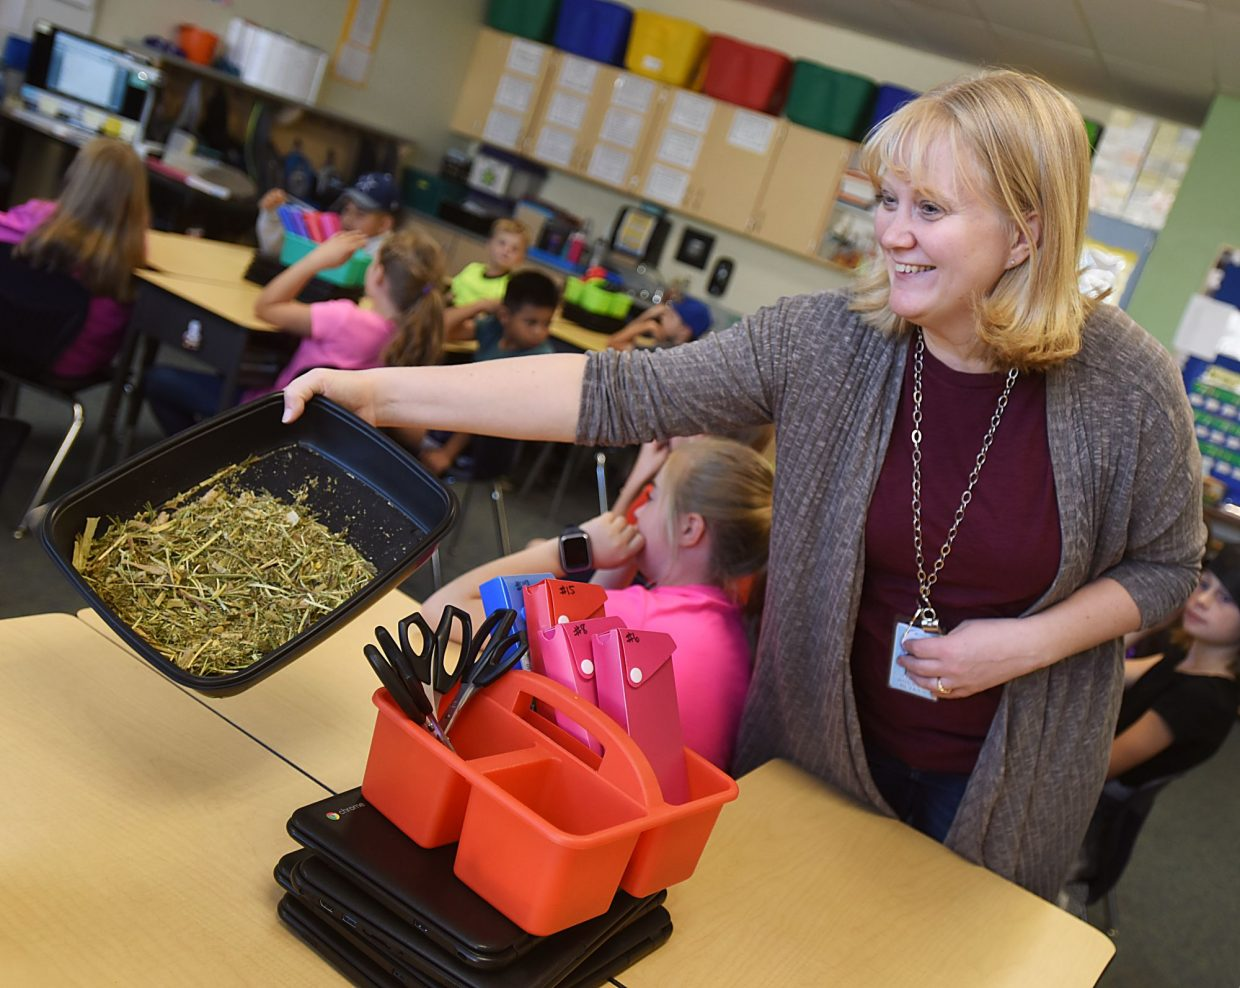 Roxie Butkus shows students in her class some of the feed used to keep dairy cows healthy and fed during the Adopt a Farmer event Oct. 25 at Range View Elementary in Severance, Colo.